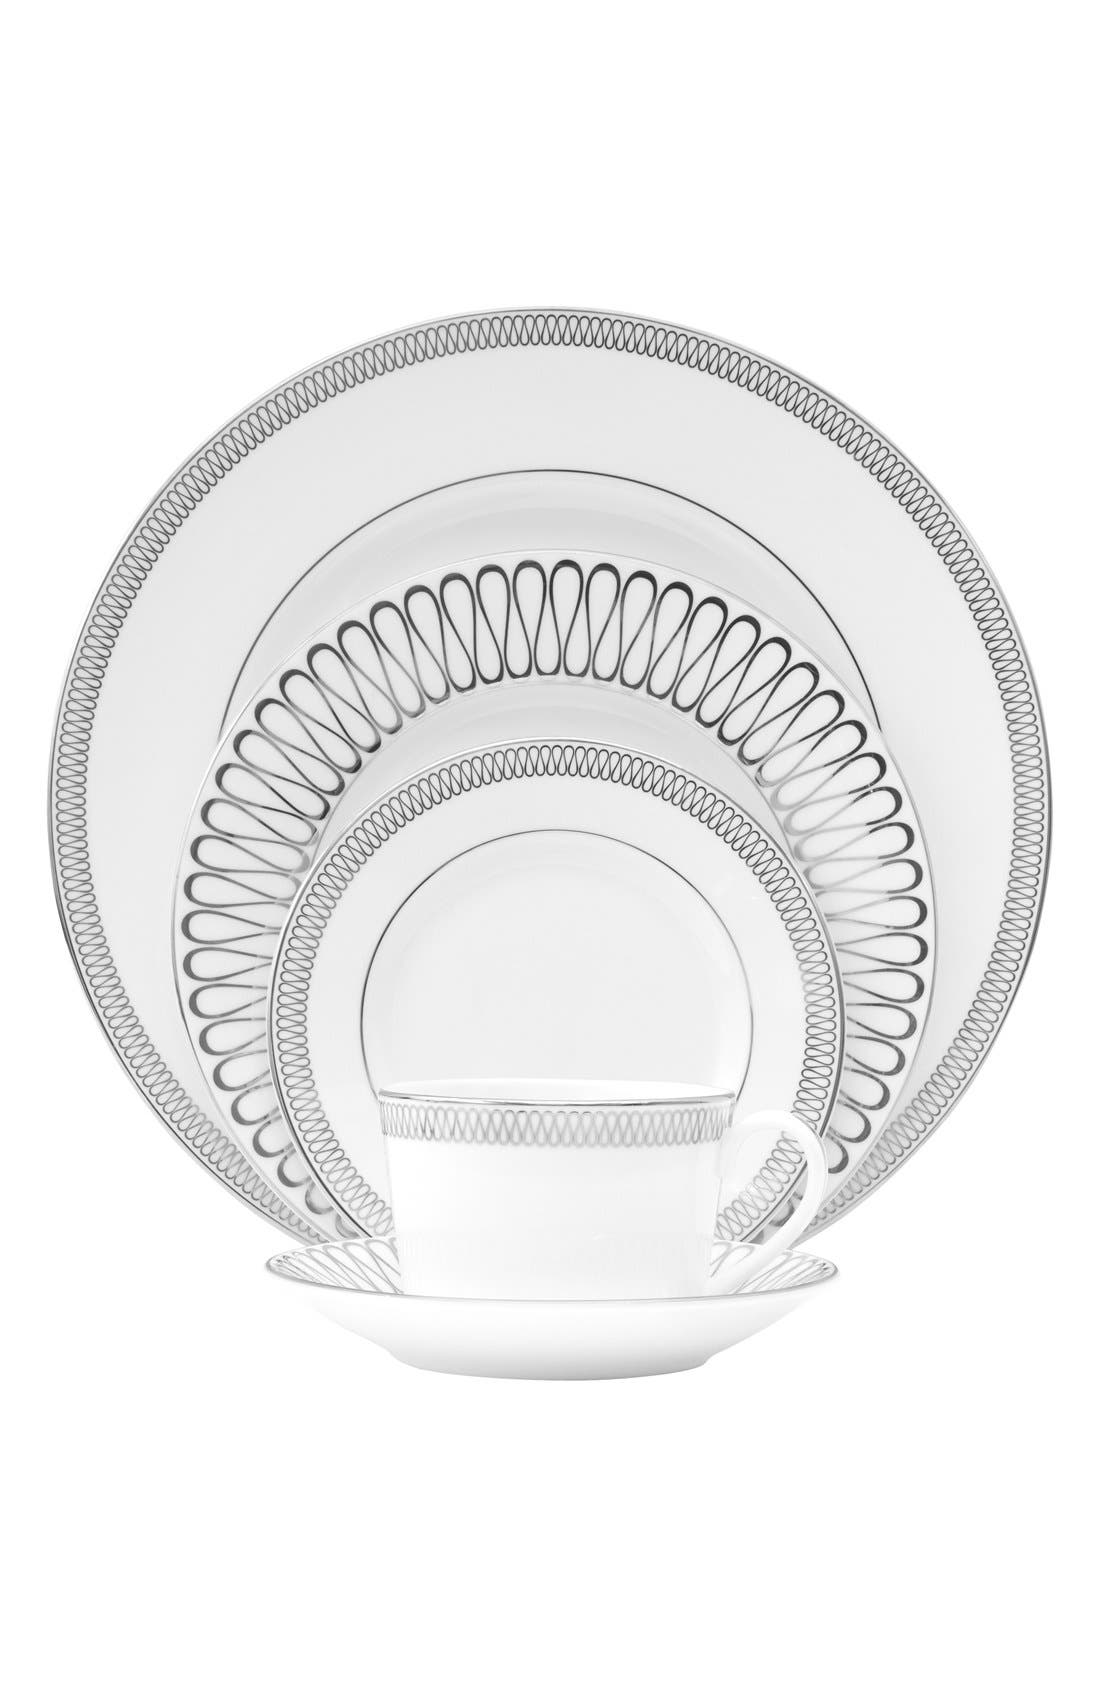 Alternate Image 1 Selected - MoniqueLhuillierWaterford 'Opulence' 5-Piece China Place Setting